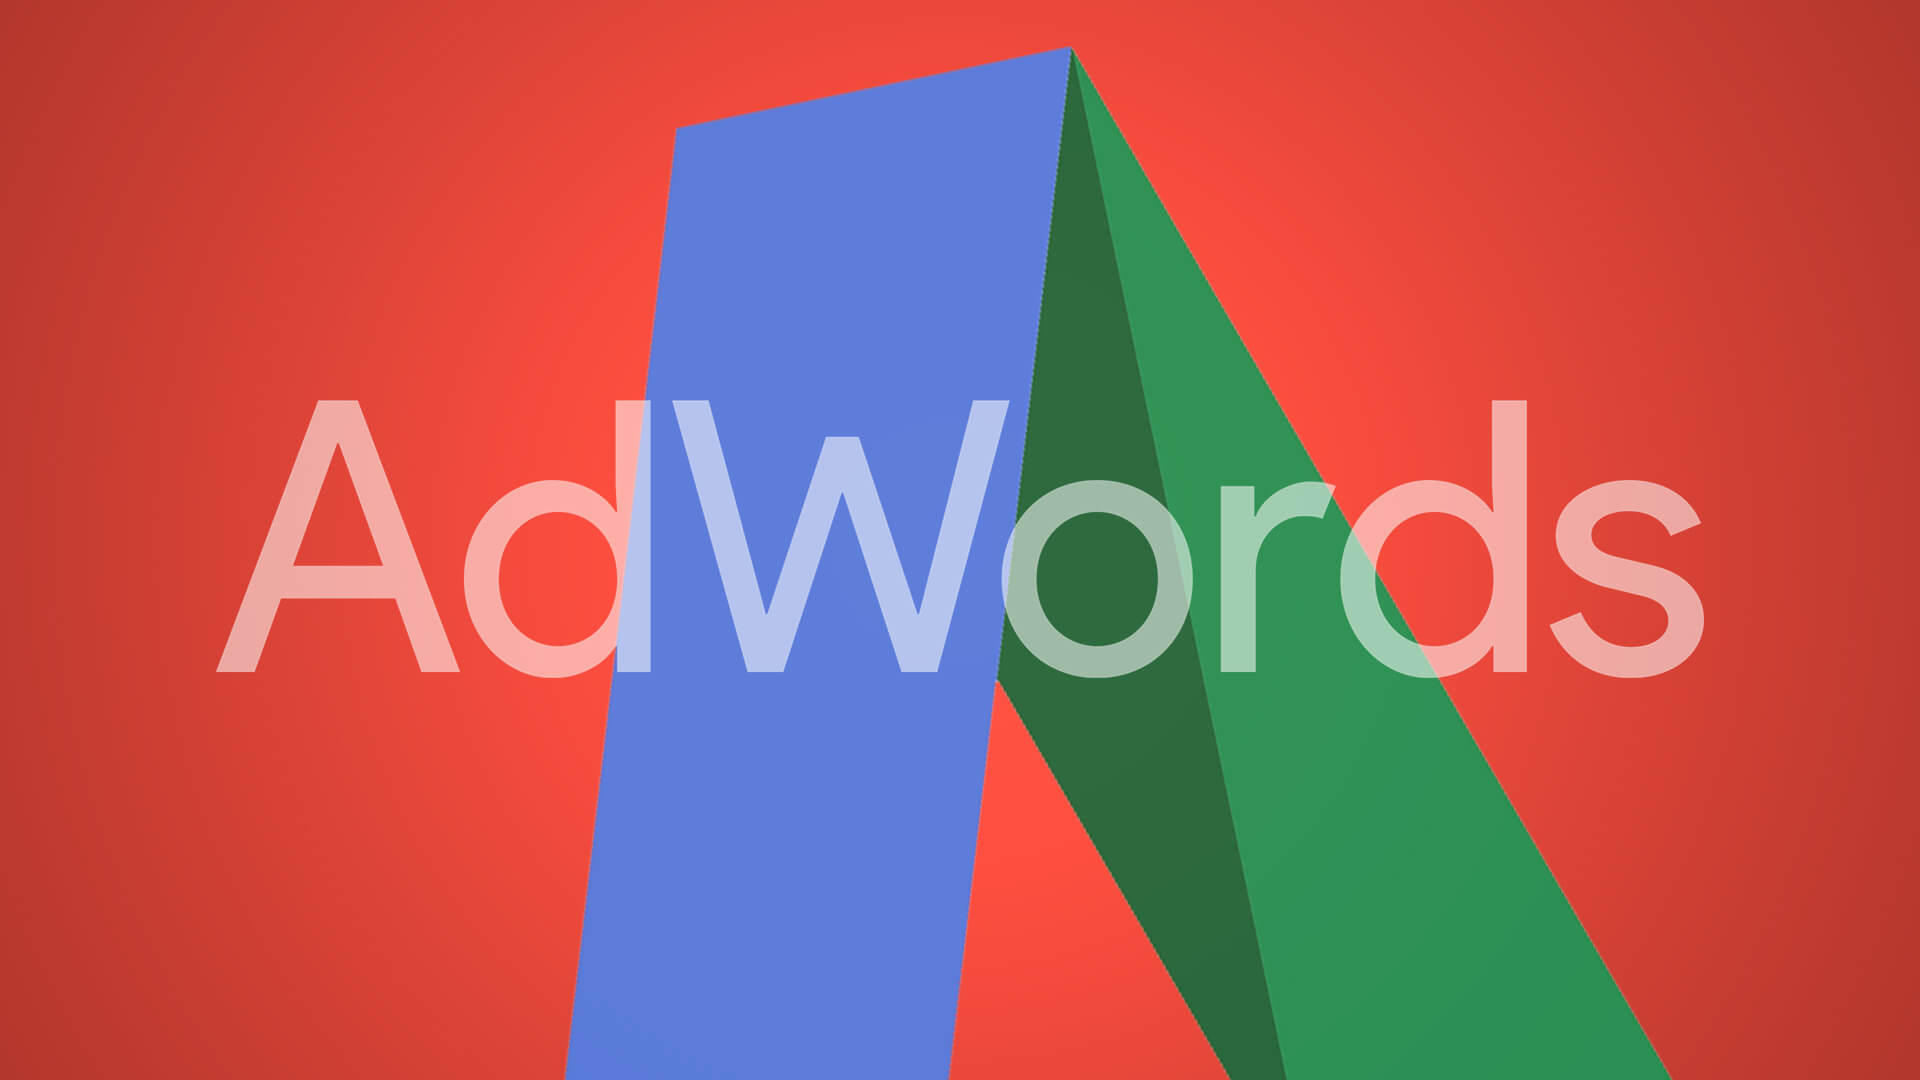 AdWords advertisers can use phone numbers & addresses for Google Customer Match targeting